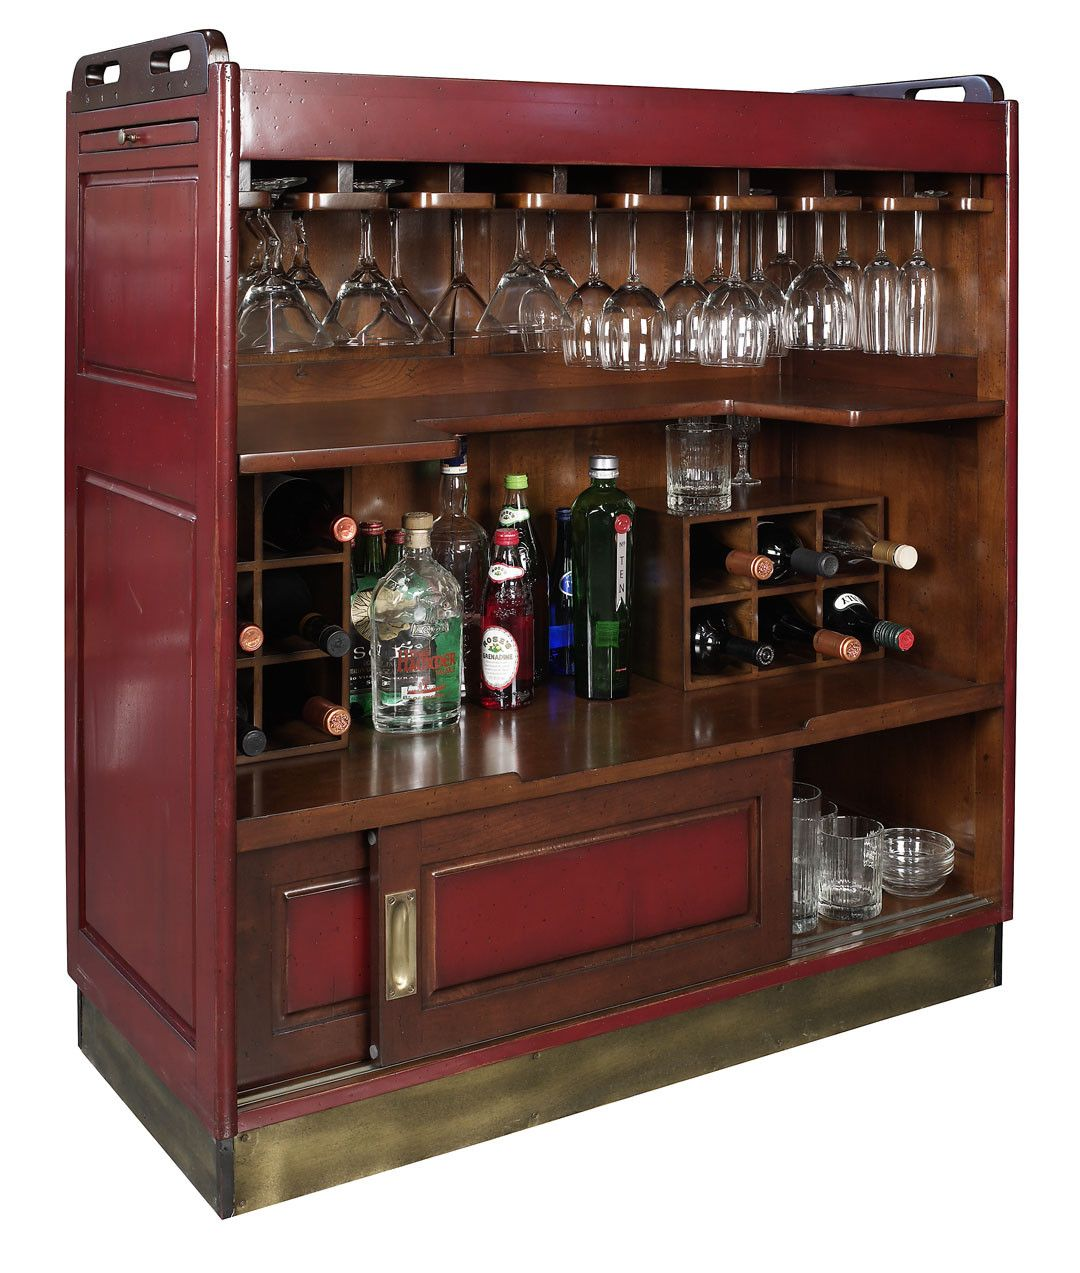 Casablanca Bar In Red Gonautical Bar Furniture Home Bar Furniture Nautical Home Decorating